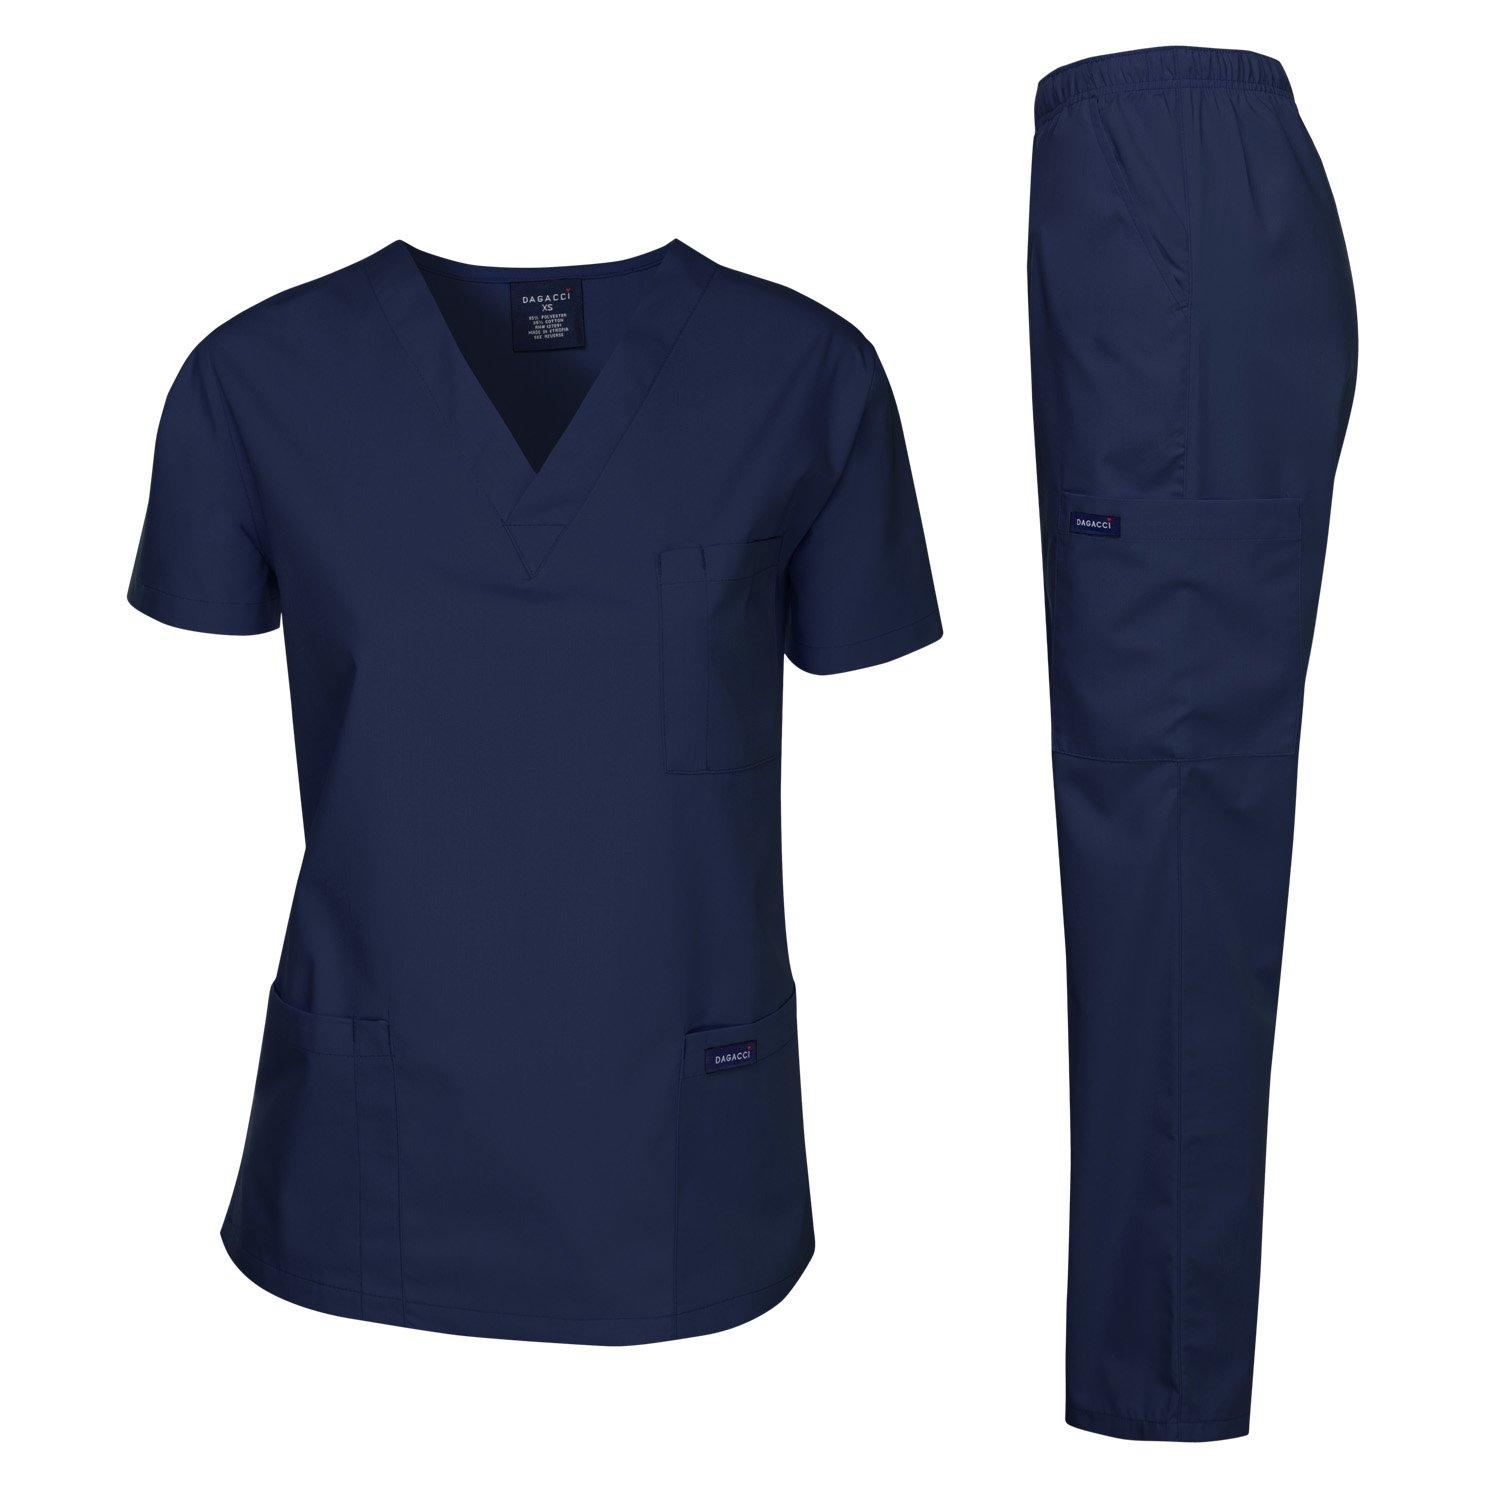 Dagacci Medical Uniform Woman and Man Scrub Set Unisex Medical Scrub Top and Pant, NAVY, M